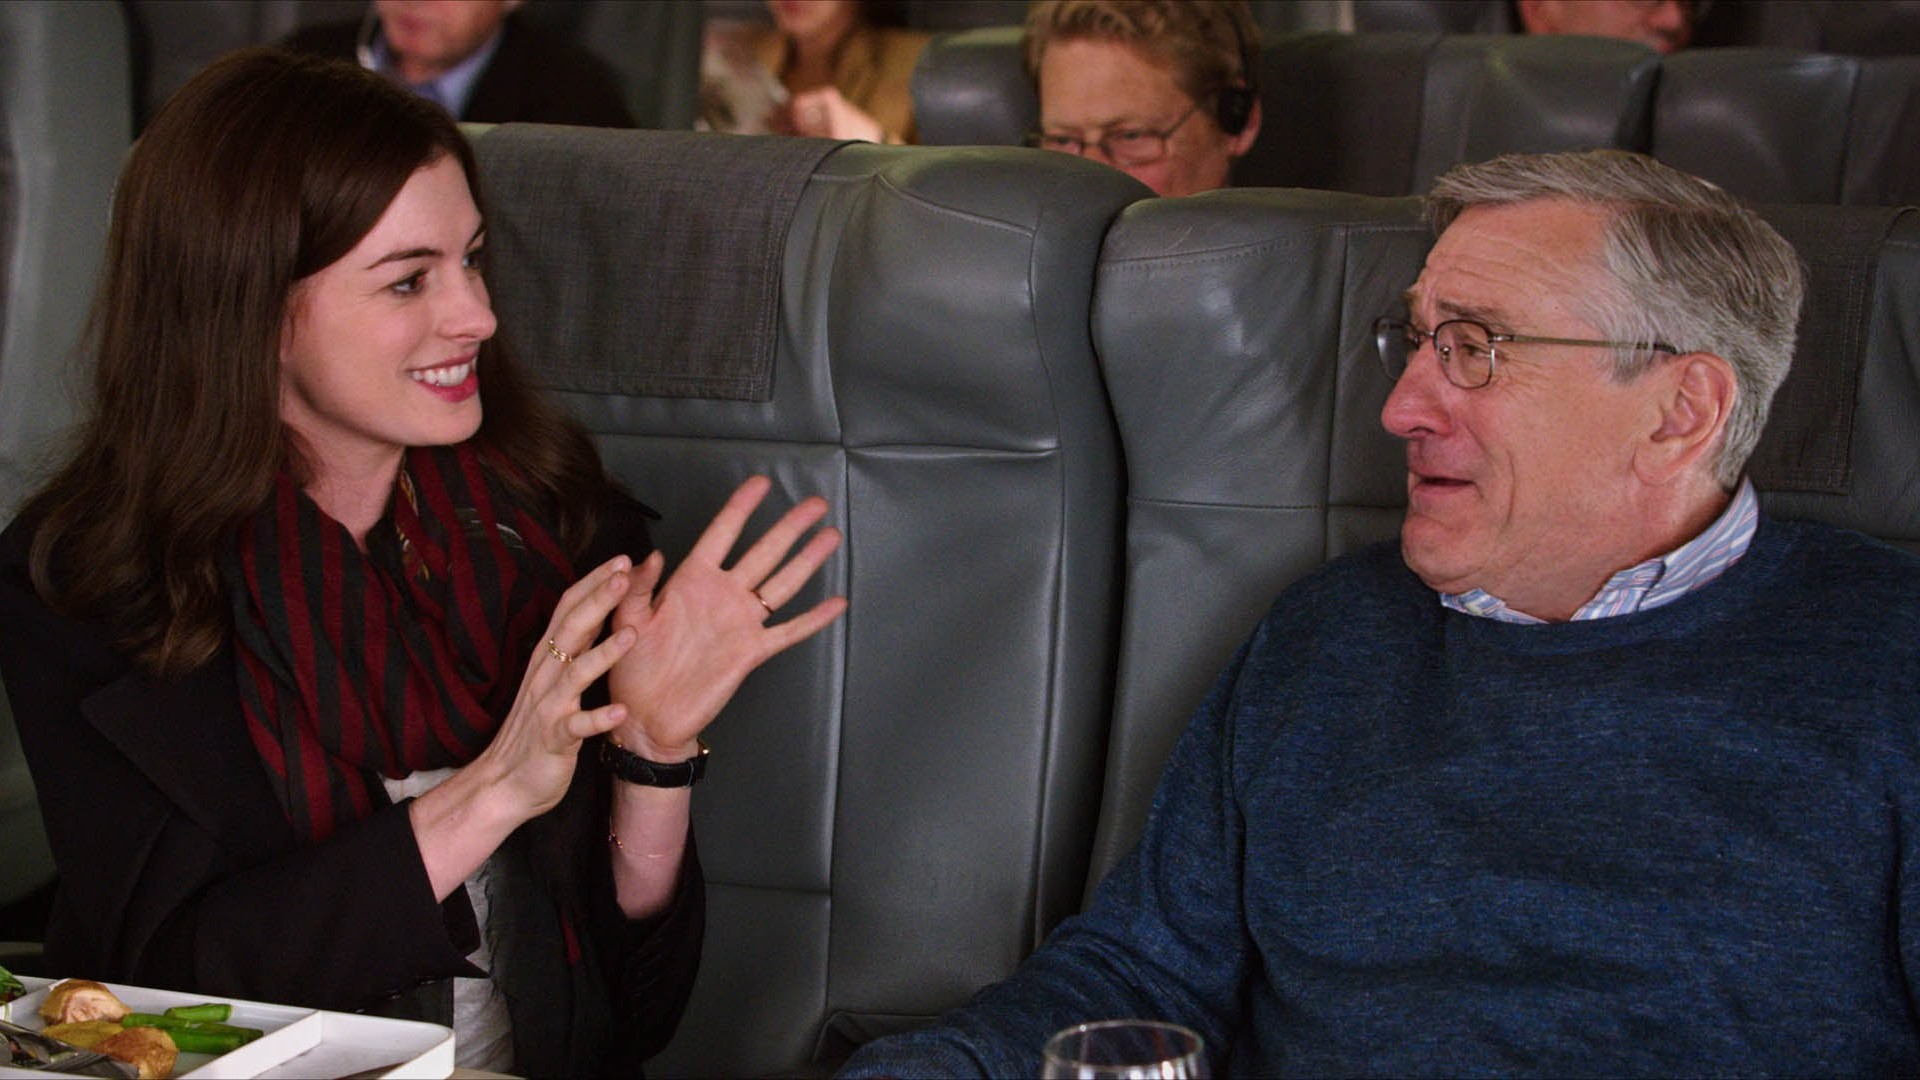 The Intern – Now Playing [HD]